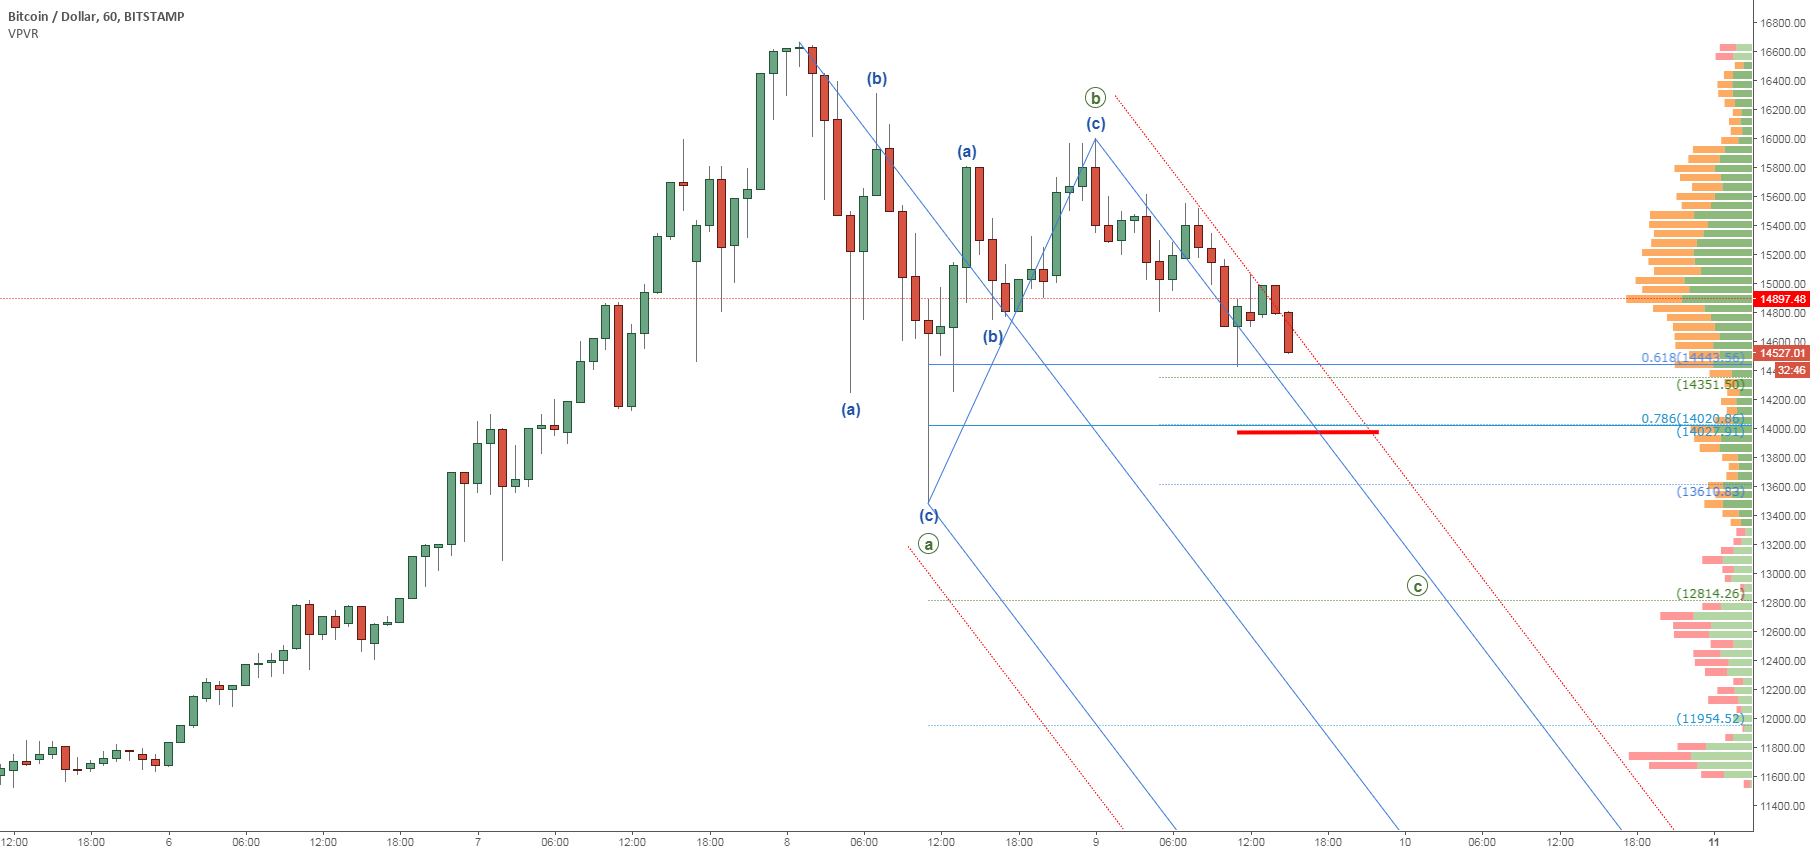 Bitcoin (BTCUSD): Correction Warning and Levels